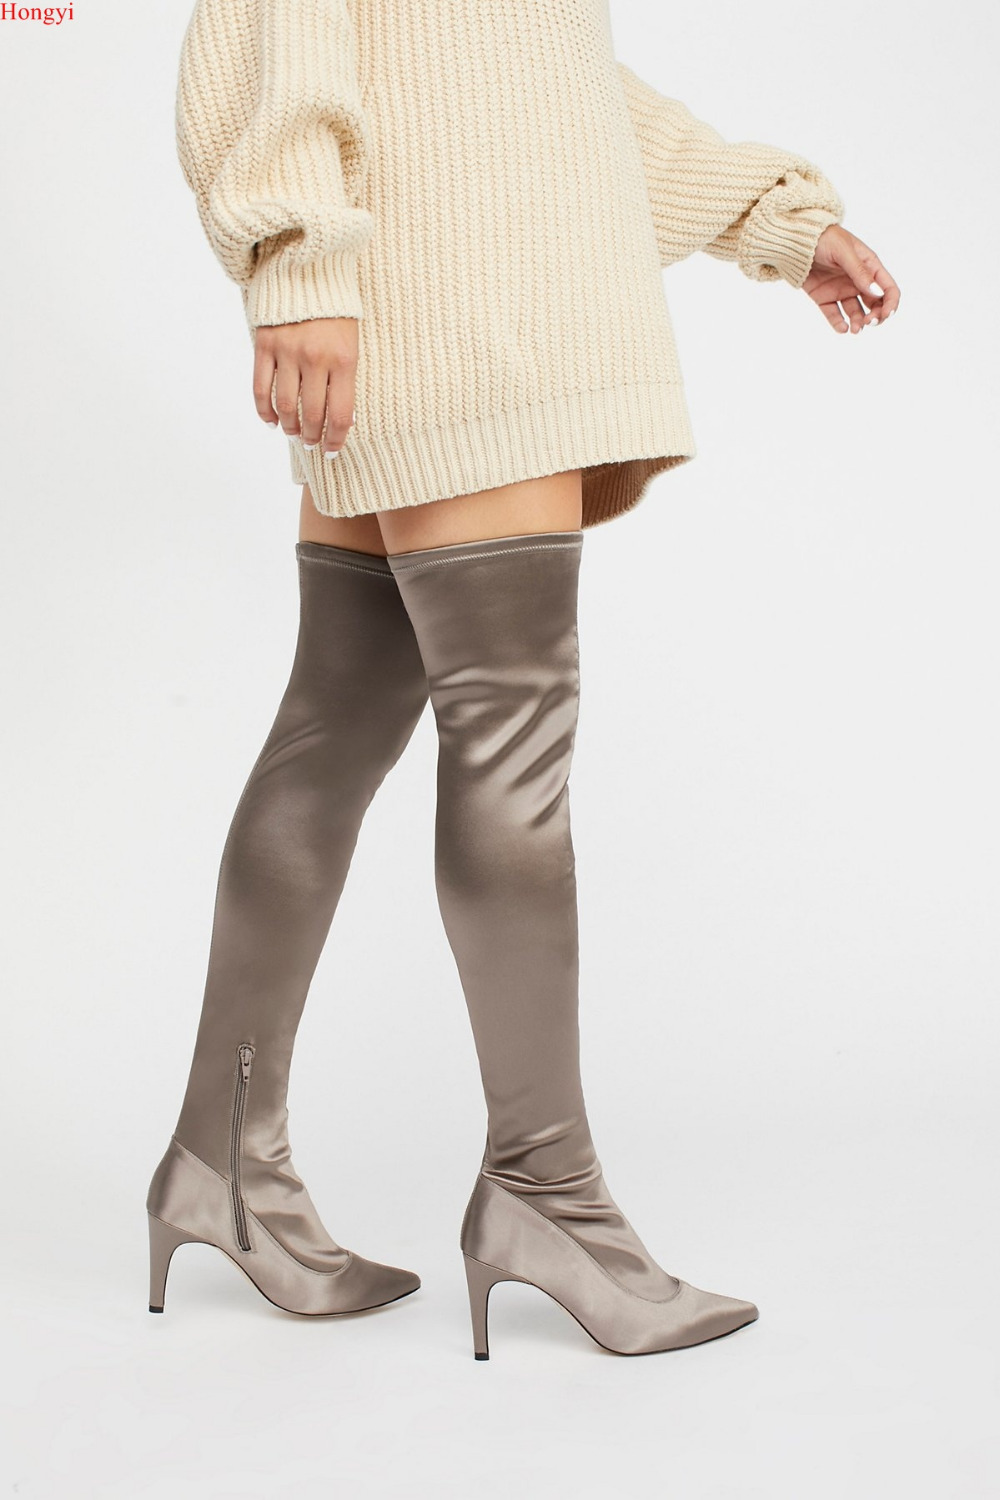 2017 Winter High Quality Satin Fabric Over The Knee Pointed Toe Boots Women Thigh High Thin heeled Slim Fit Gladiator Booty